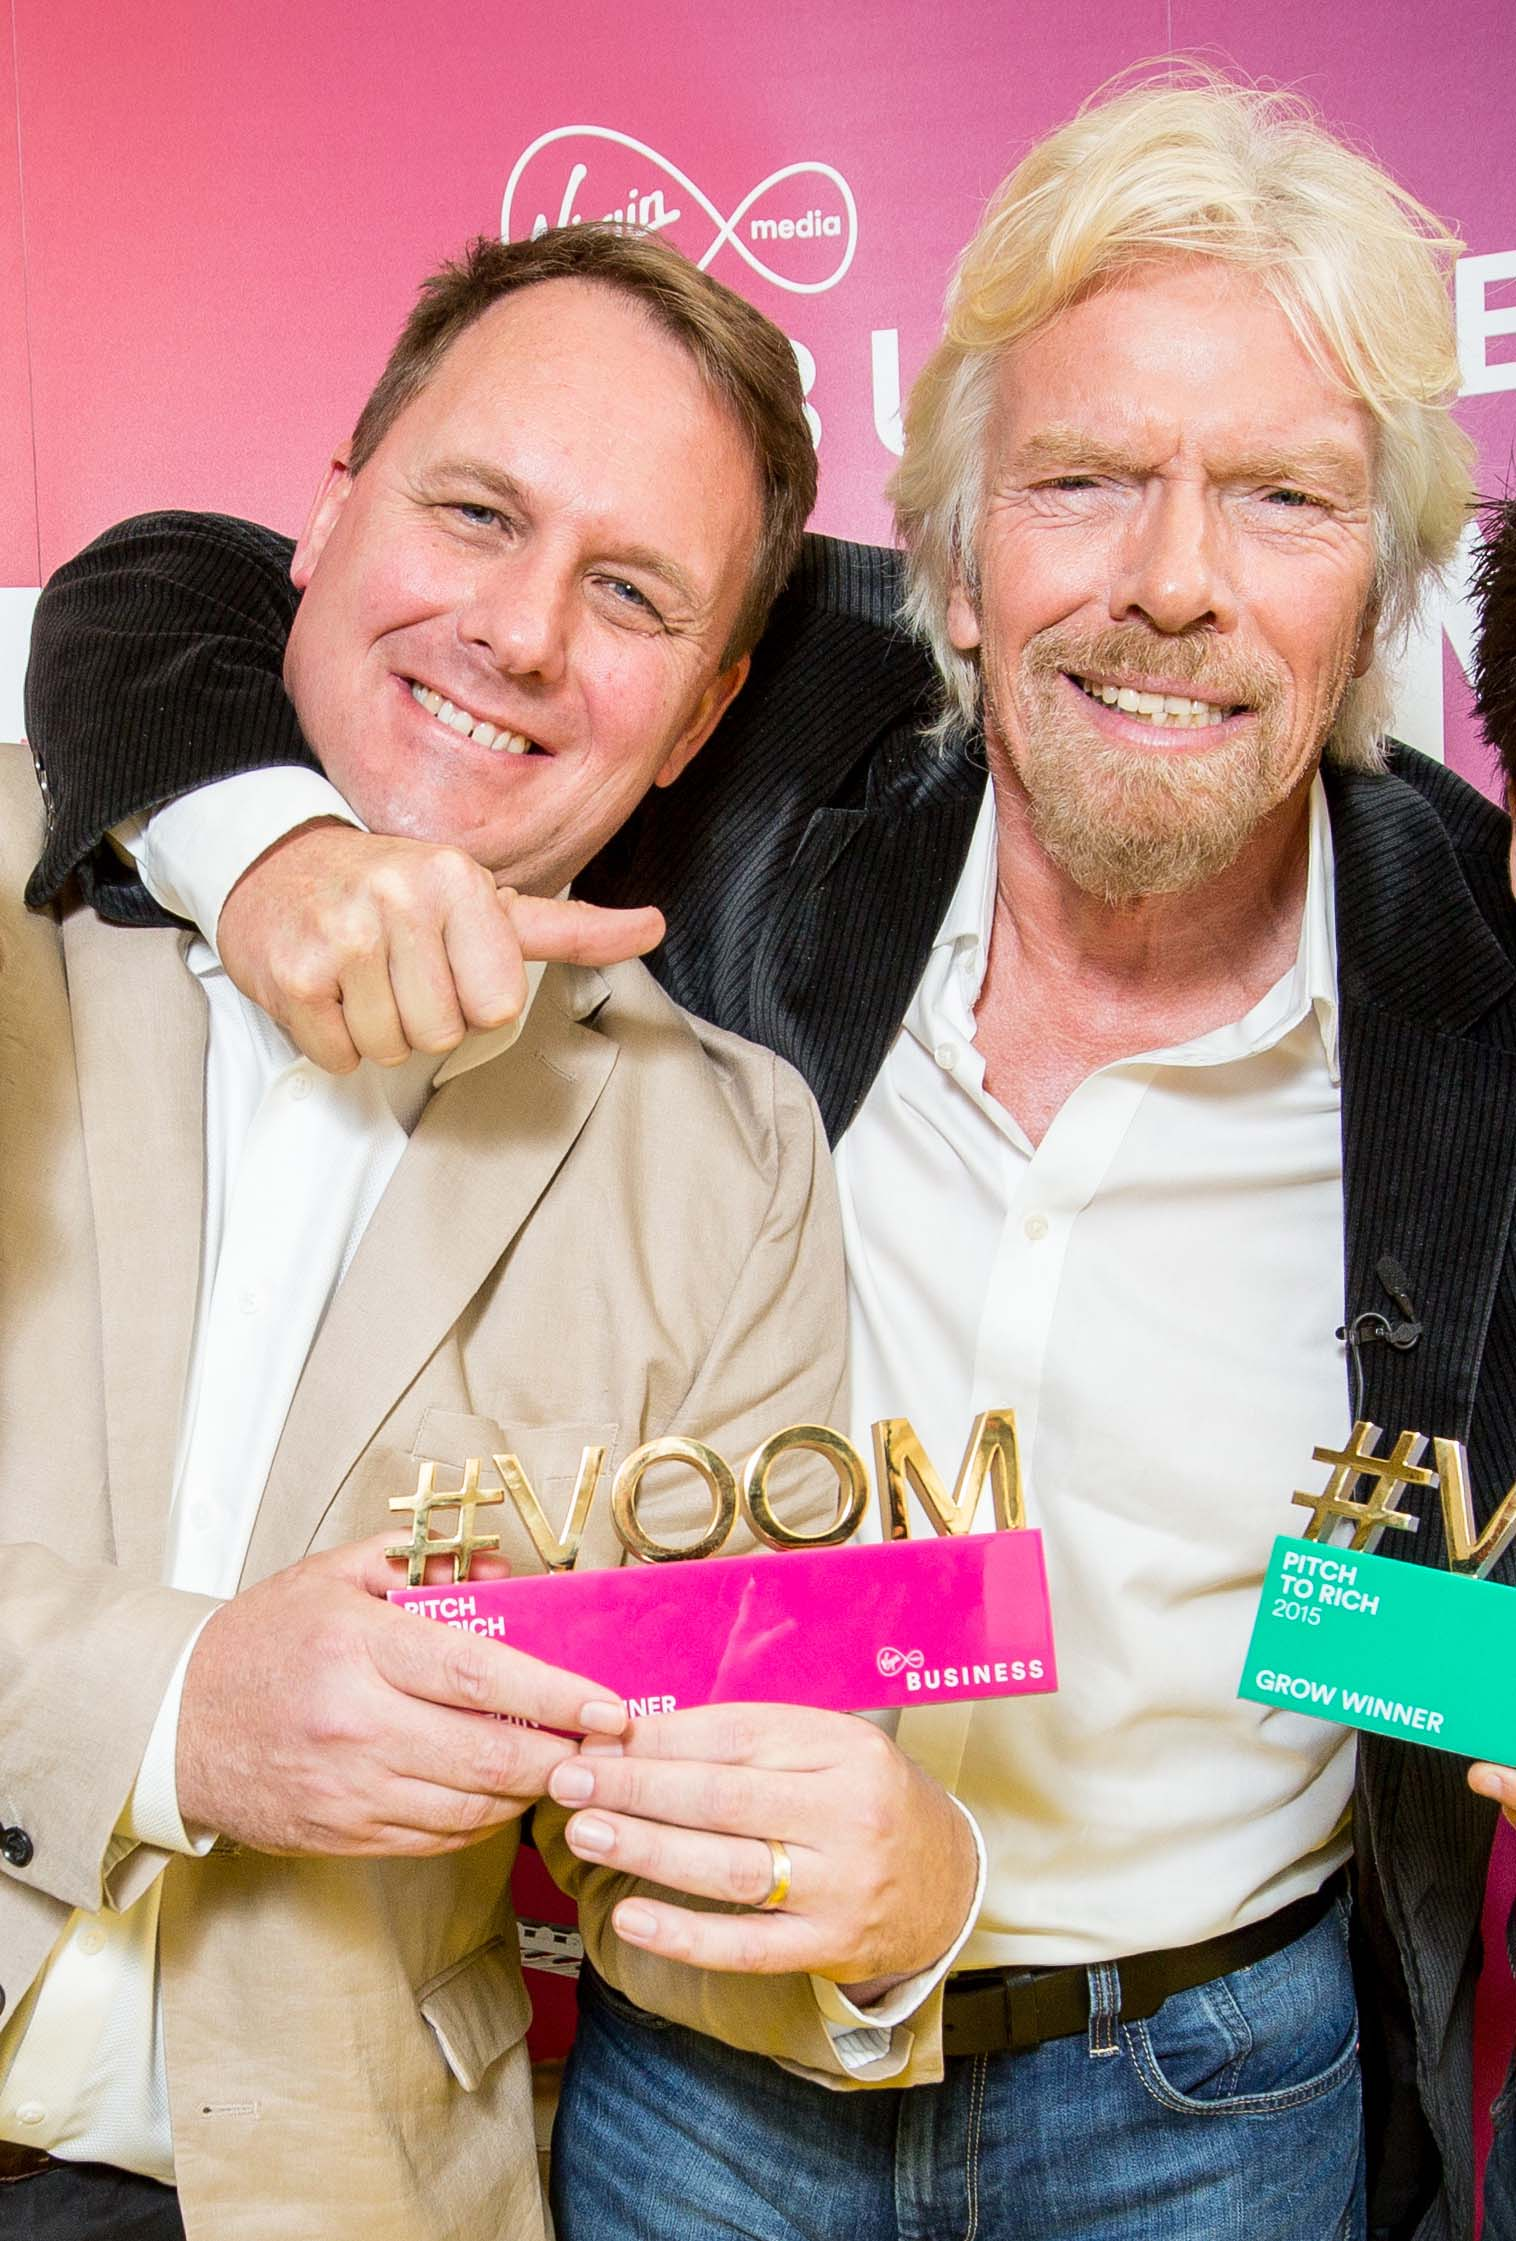 Pitch to Rich winners with Richard Branson